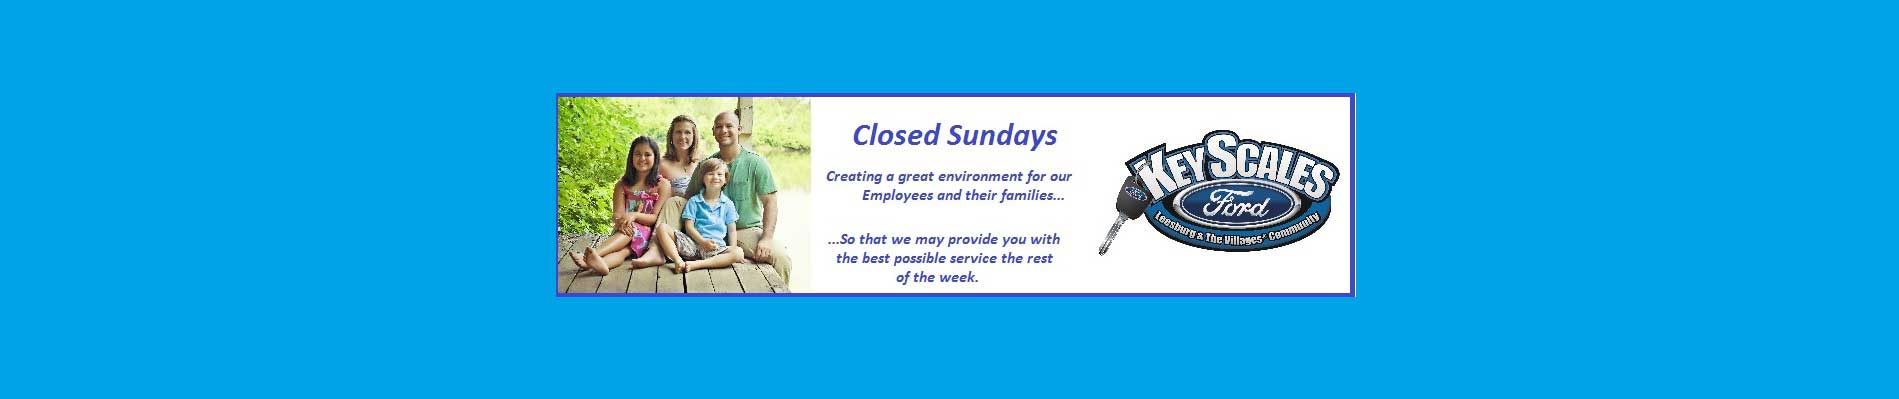 CLOSED SUNDAY BANNER